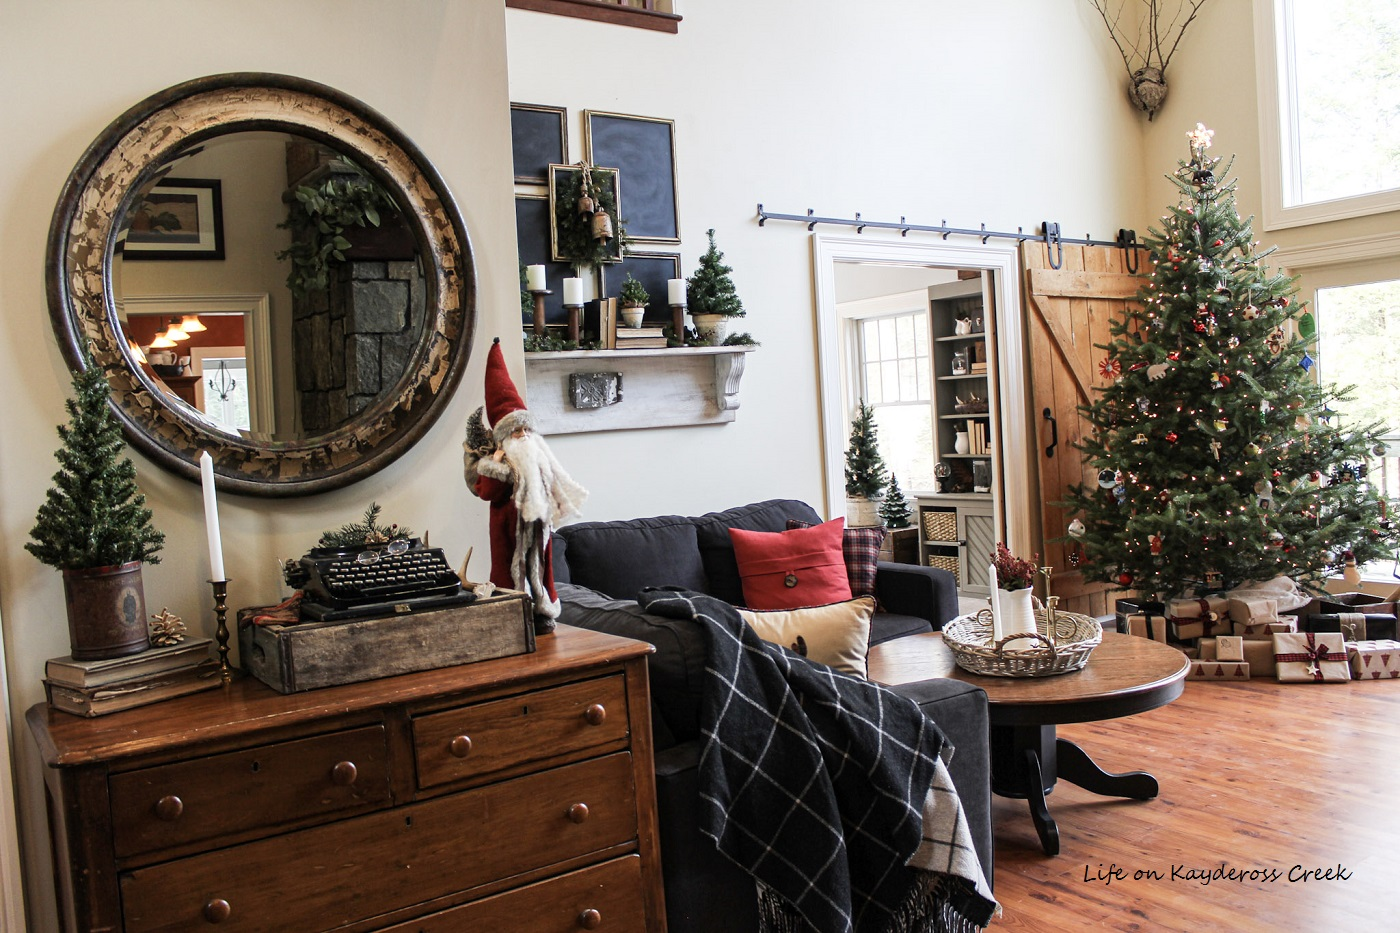 Rustic Christmas Home Decor Ideas & DIY Decorations - Life ...